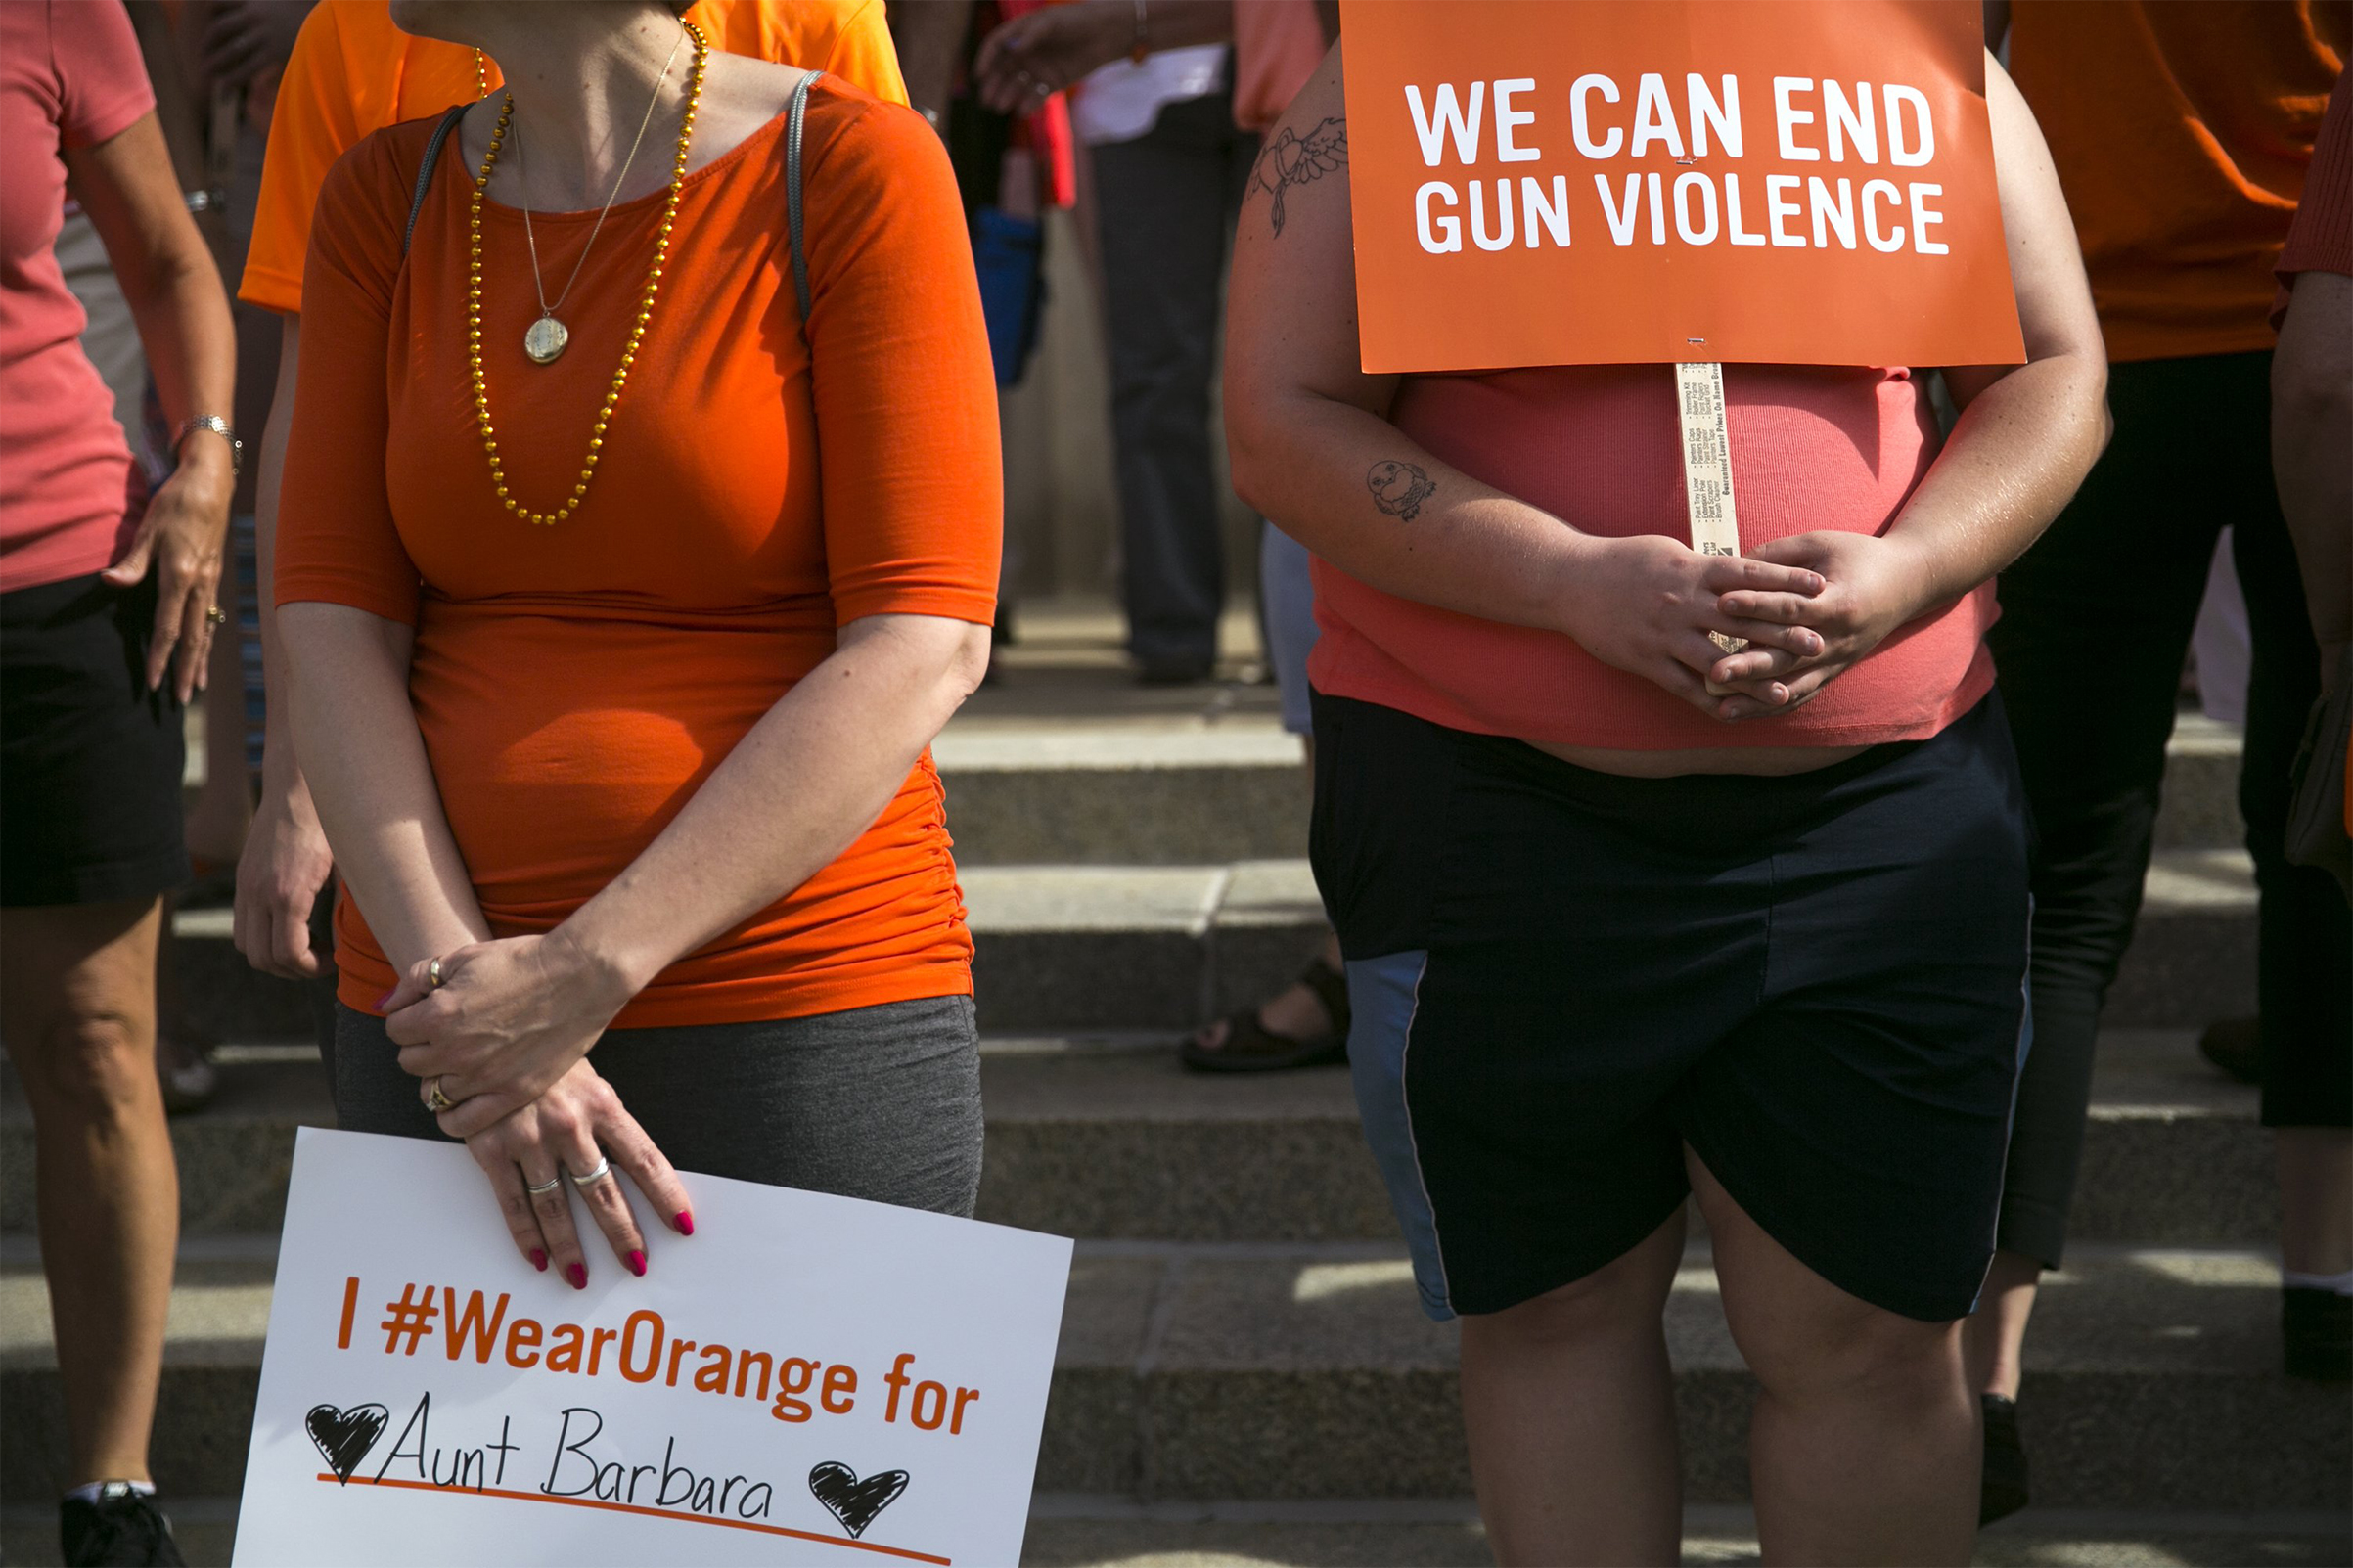 Signs during an event for National Gun Violence Awareness Day in Kalamazoo, Mich. on Thursday, June 2, 2016.